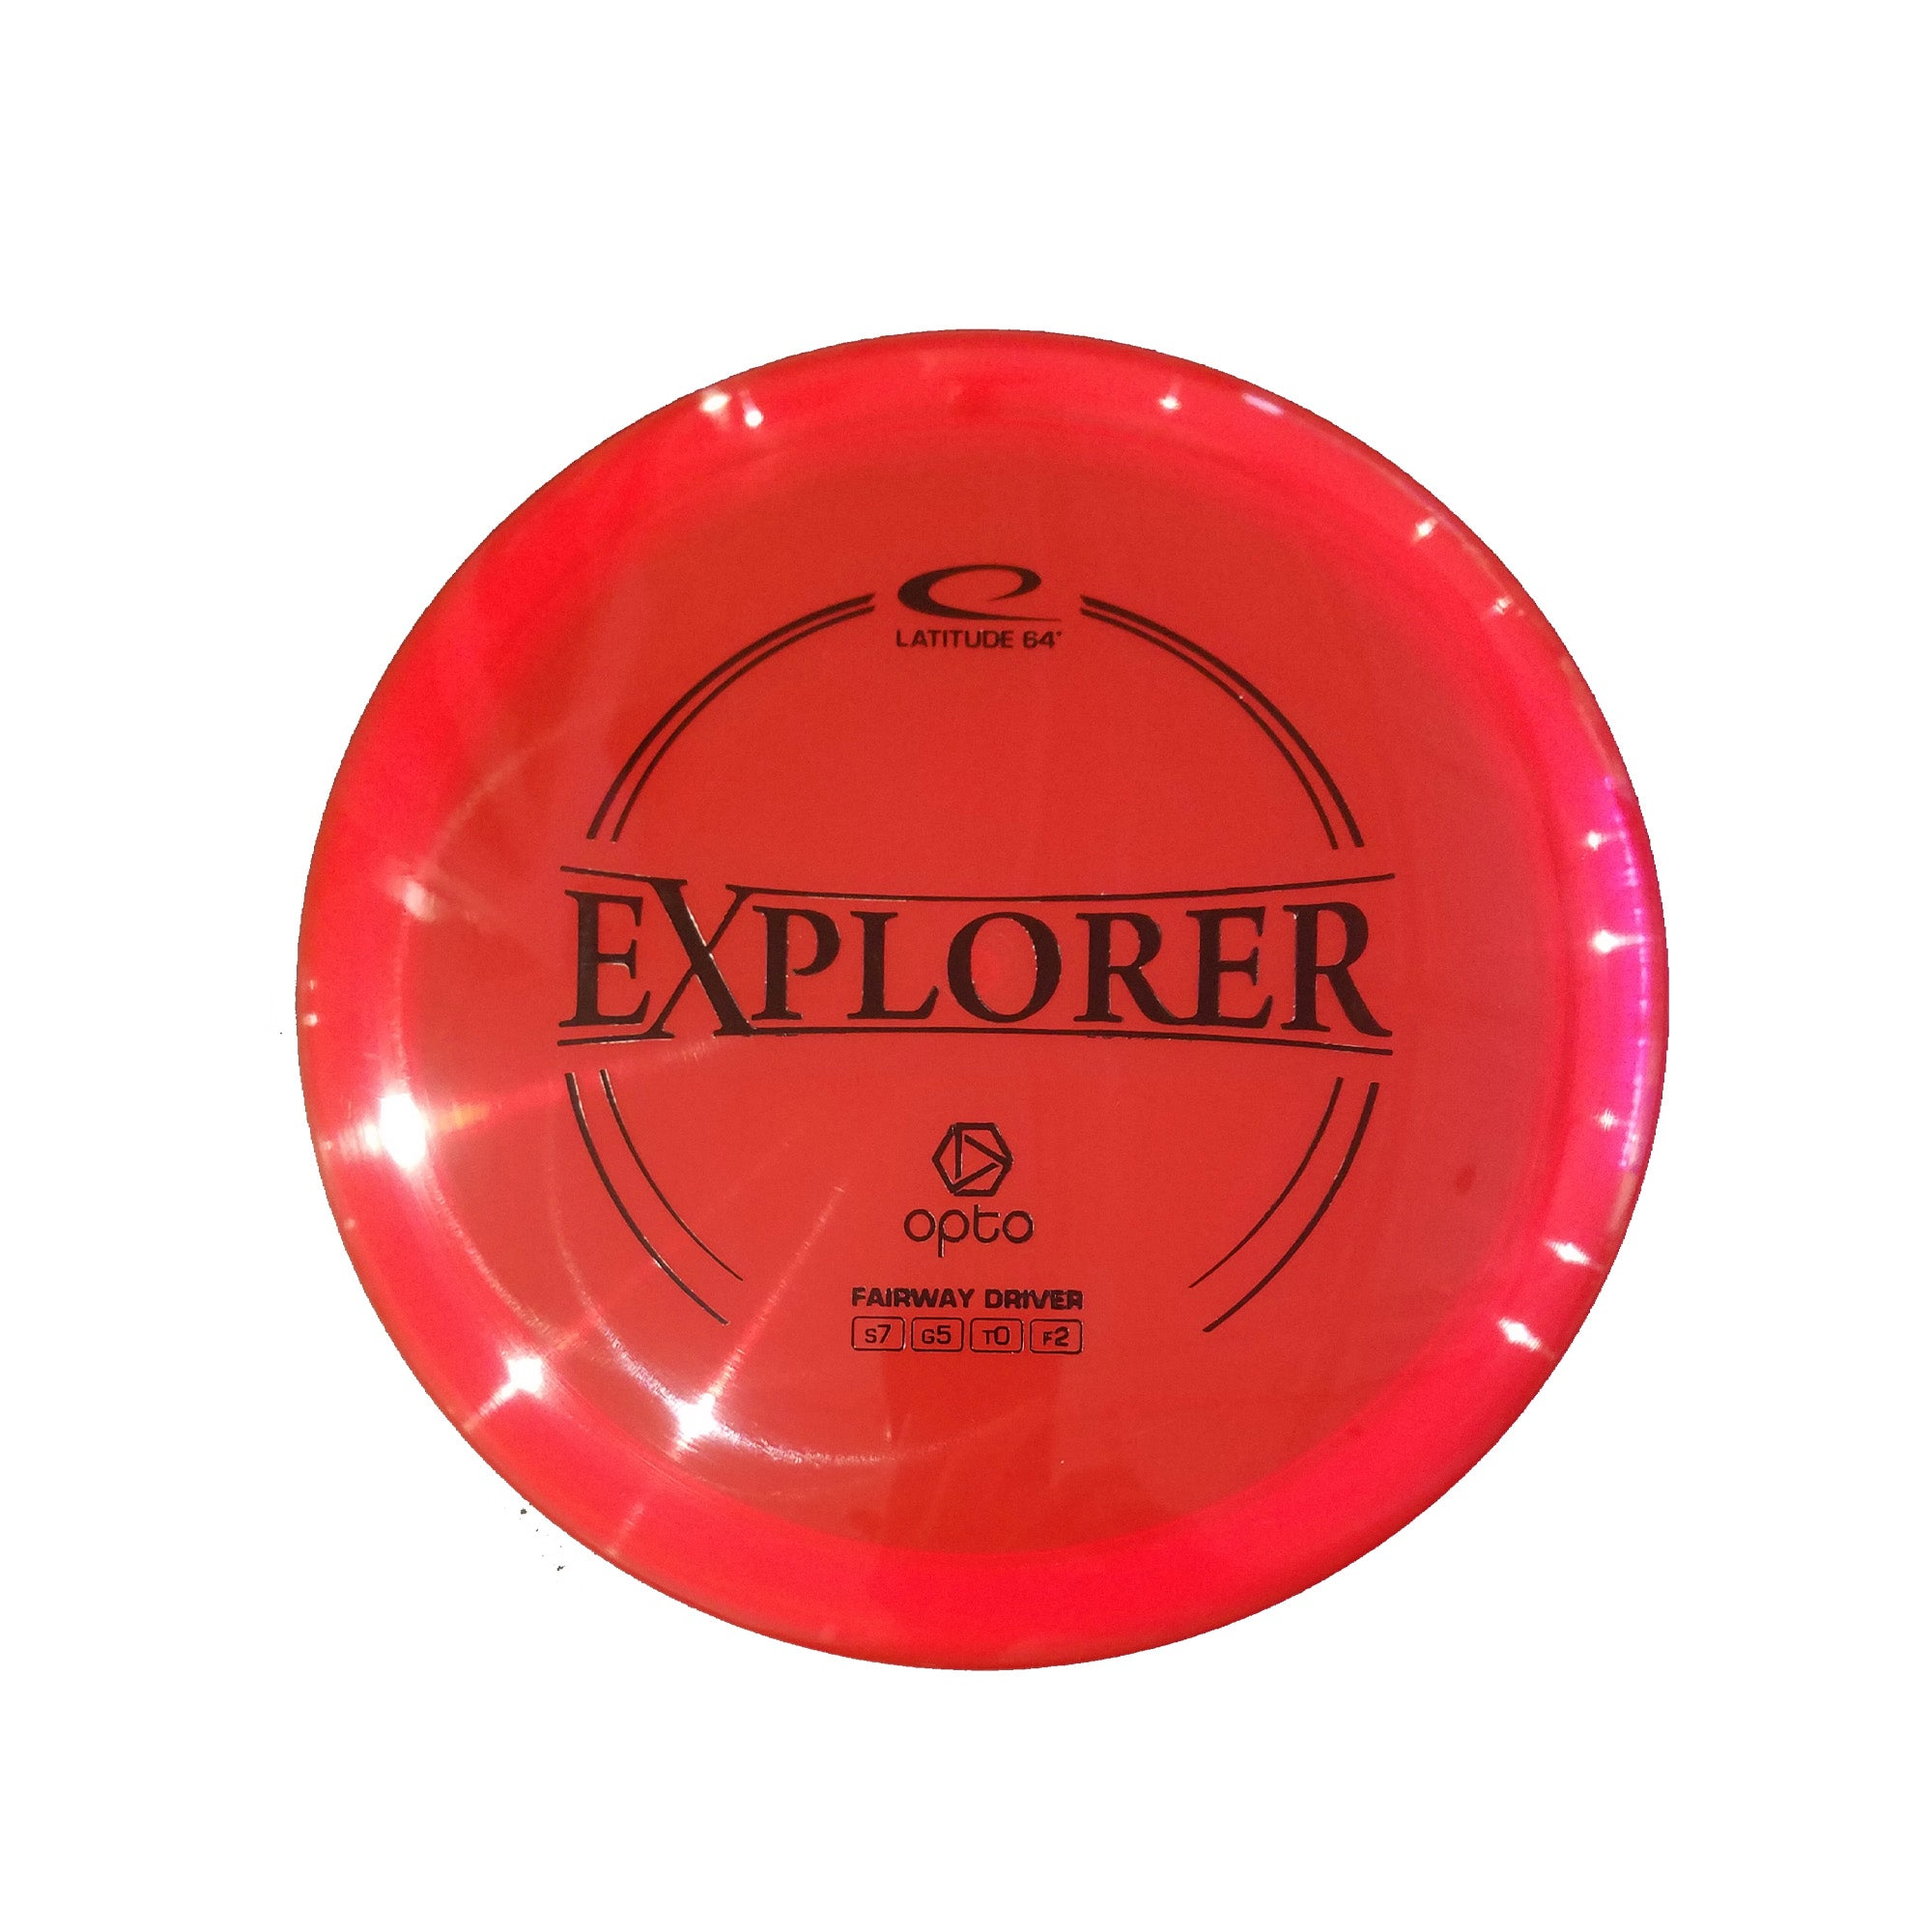 Latitude 64 Opto Explorer Fairway Driver Disc - 176g